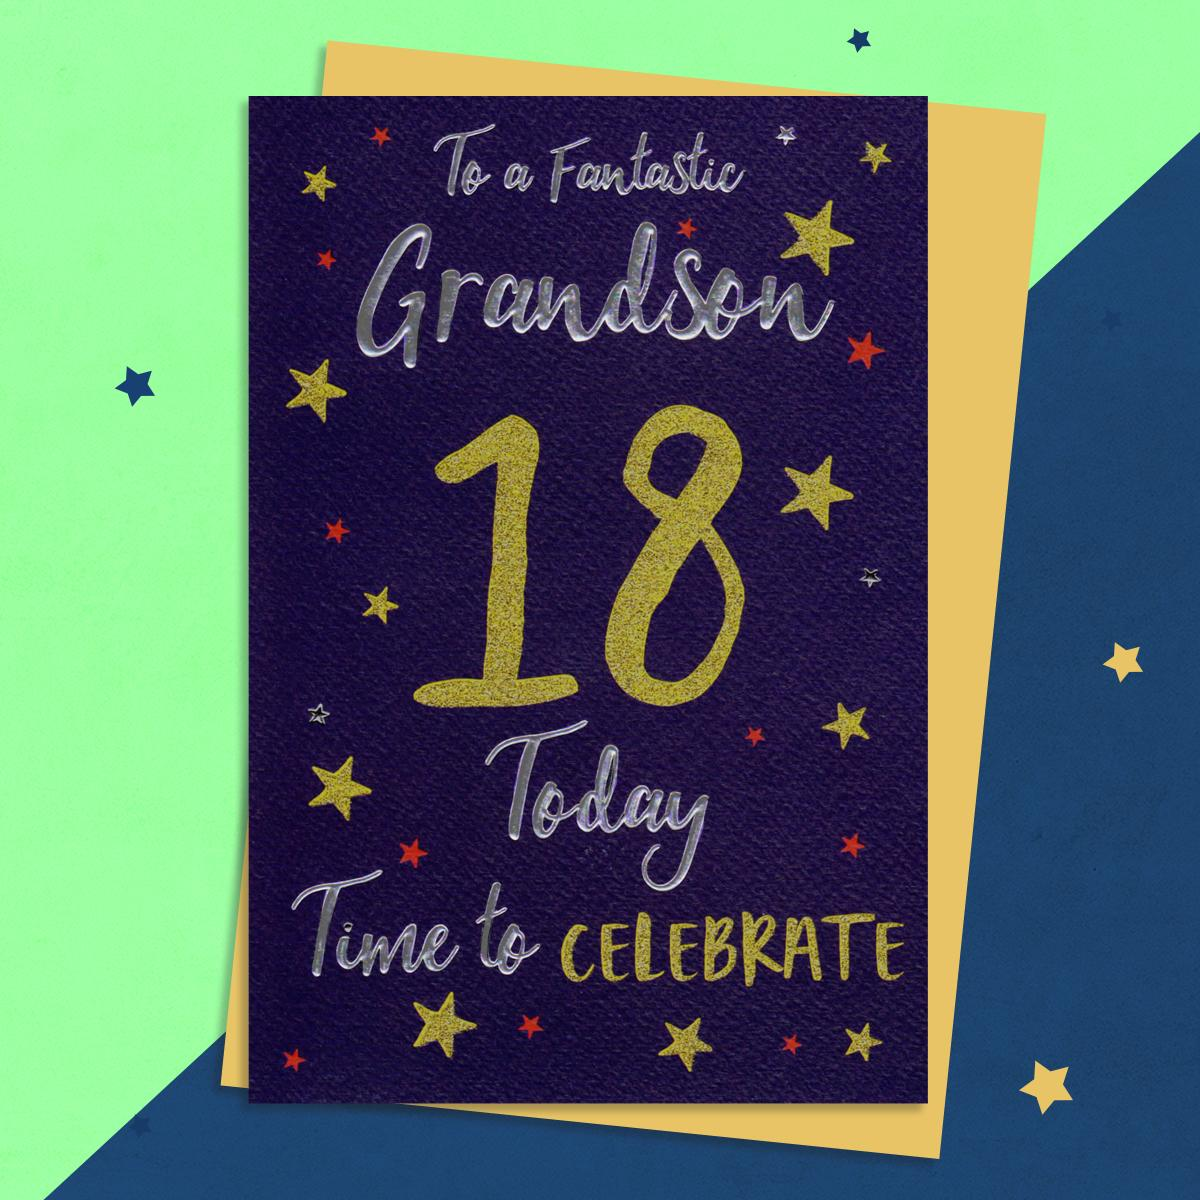 Grandson Age 18 Birthday Card Sitting On A Display Shelf